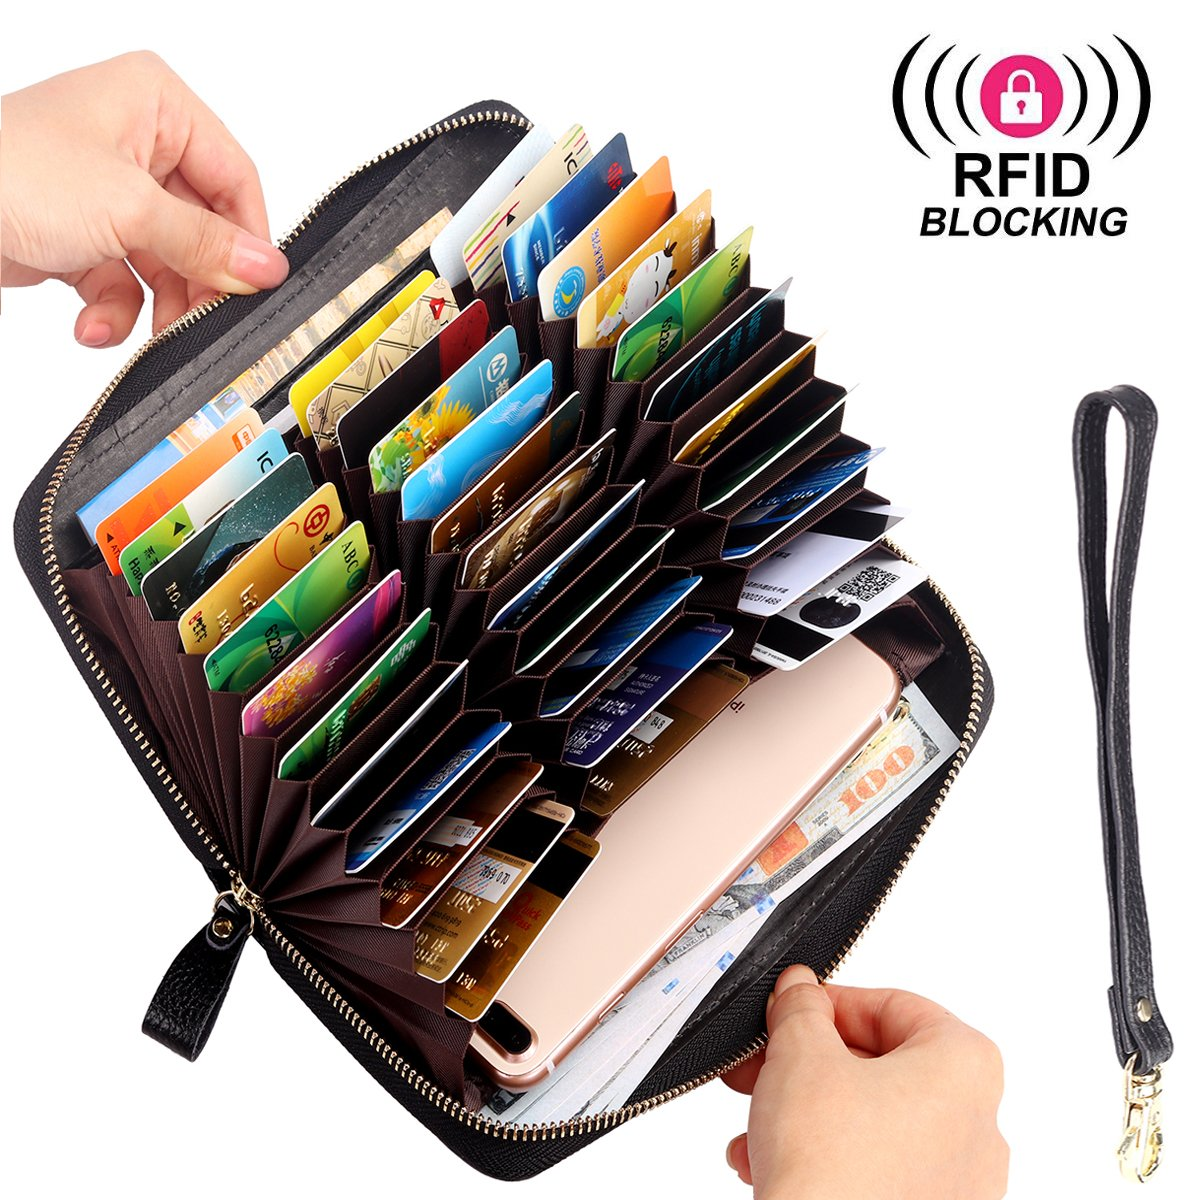 RFID Blocking Wallet Long Zip Around Anti Theft Purse, 36 Slots Large Capacity for Credit Card, Passport, Cell phone … (Embossed Black)